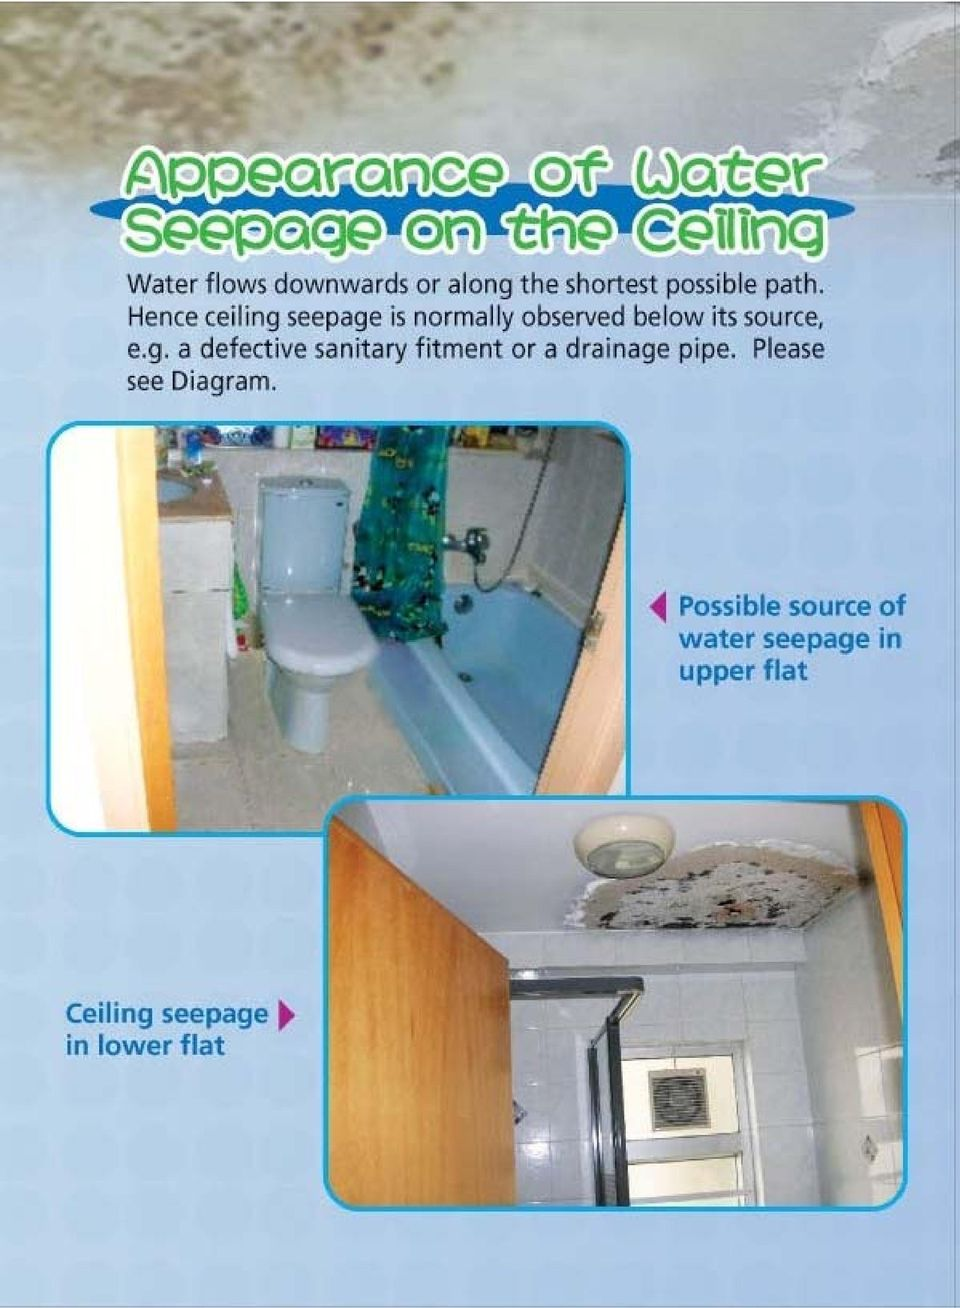 Hence ceiling seepage is normally observed below its source, e.g. a defective sanitary fitment or a drainage pipe.